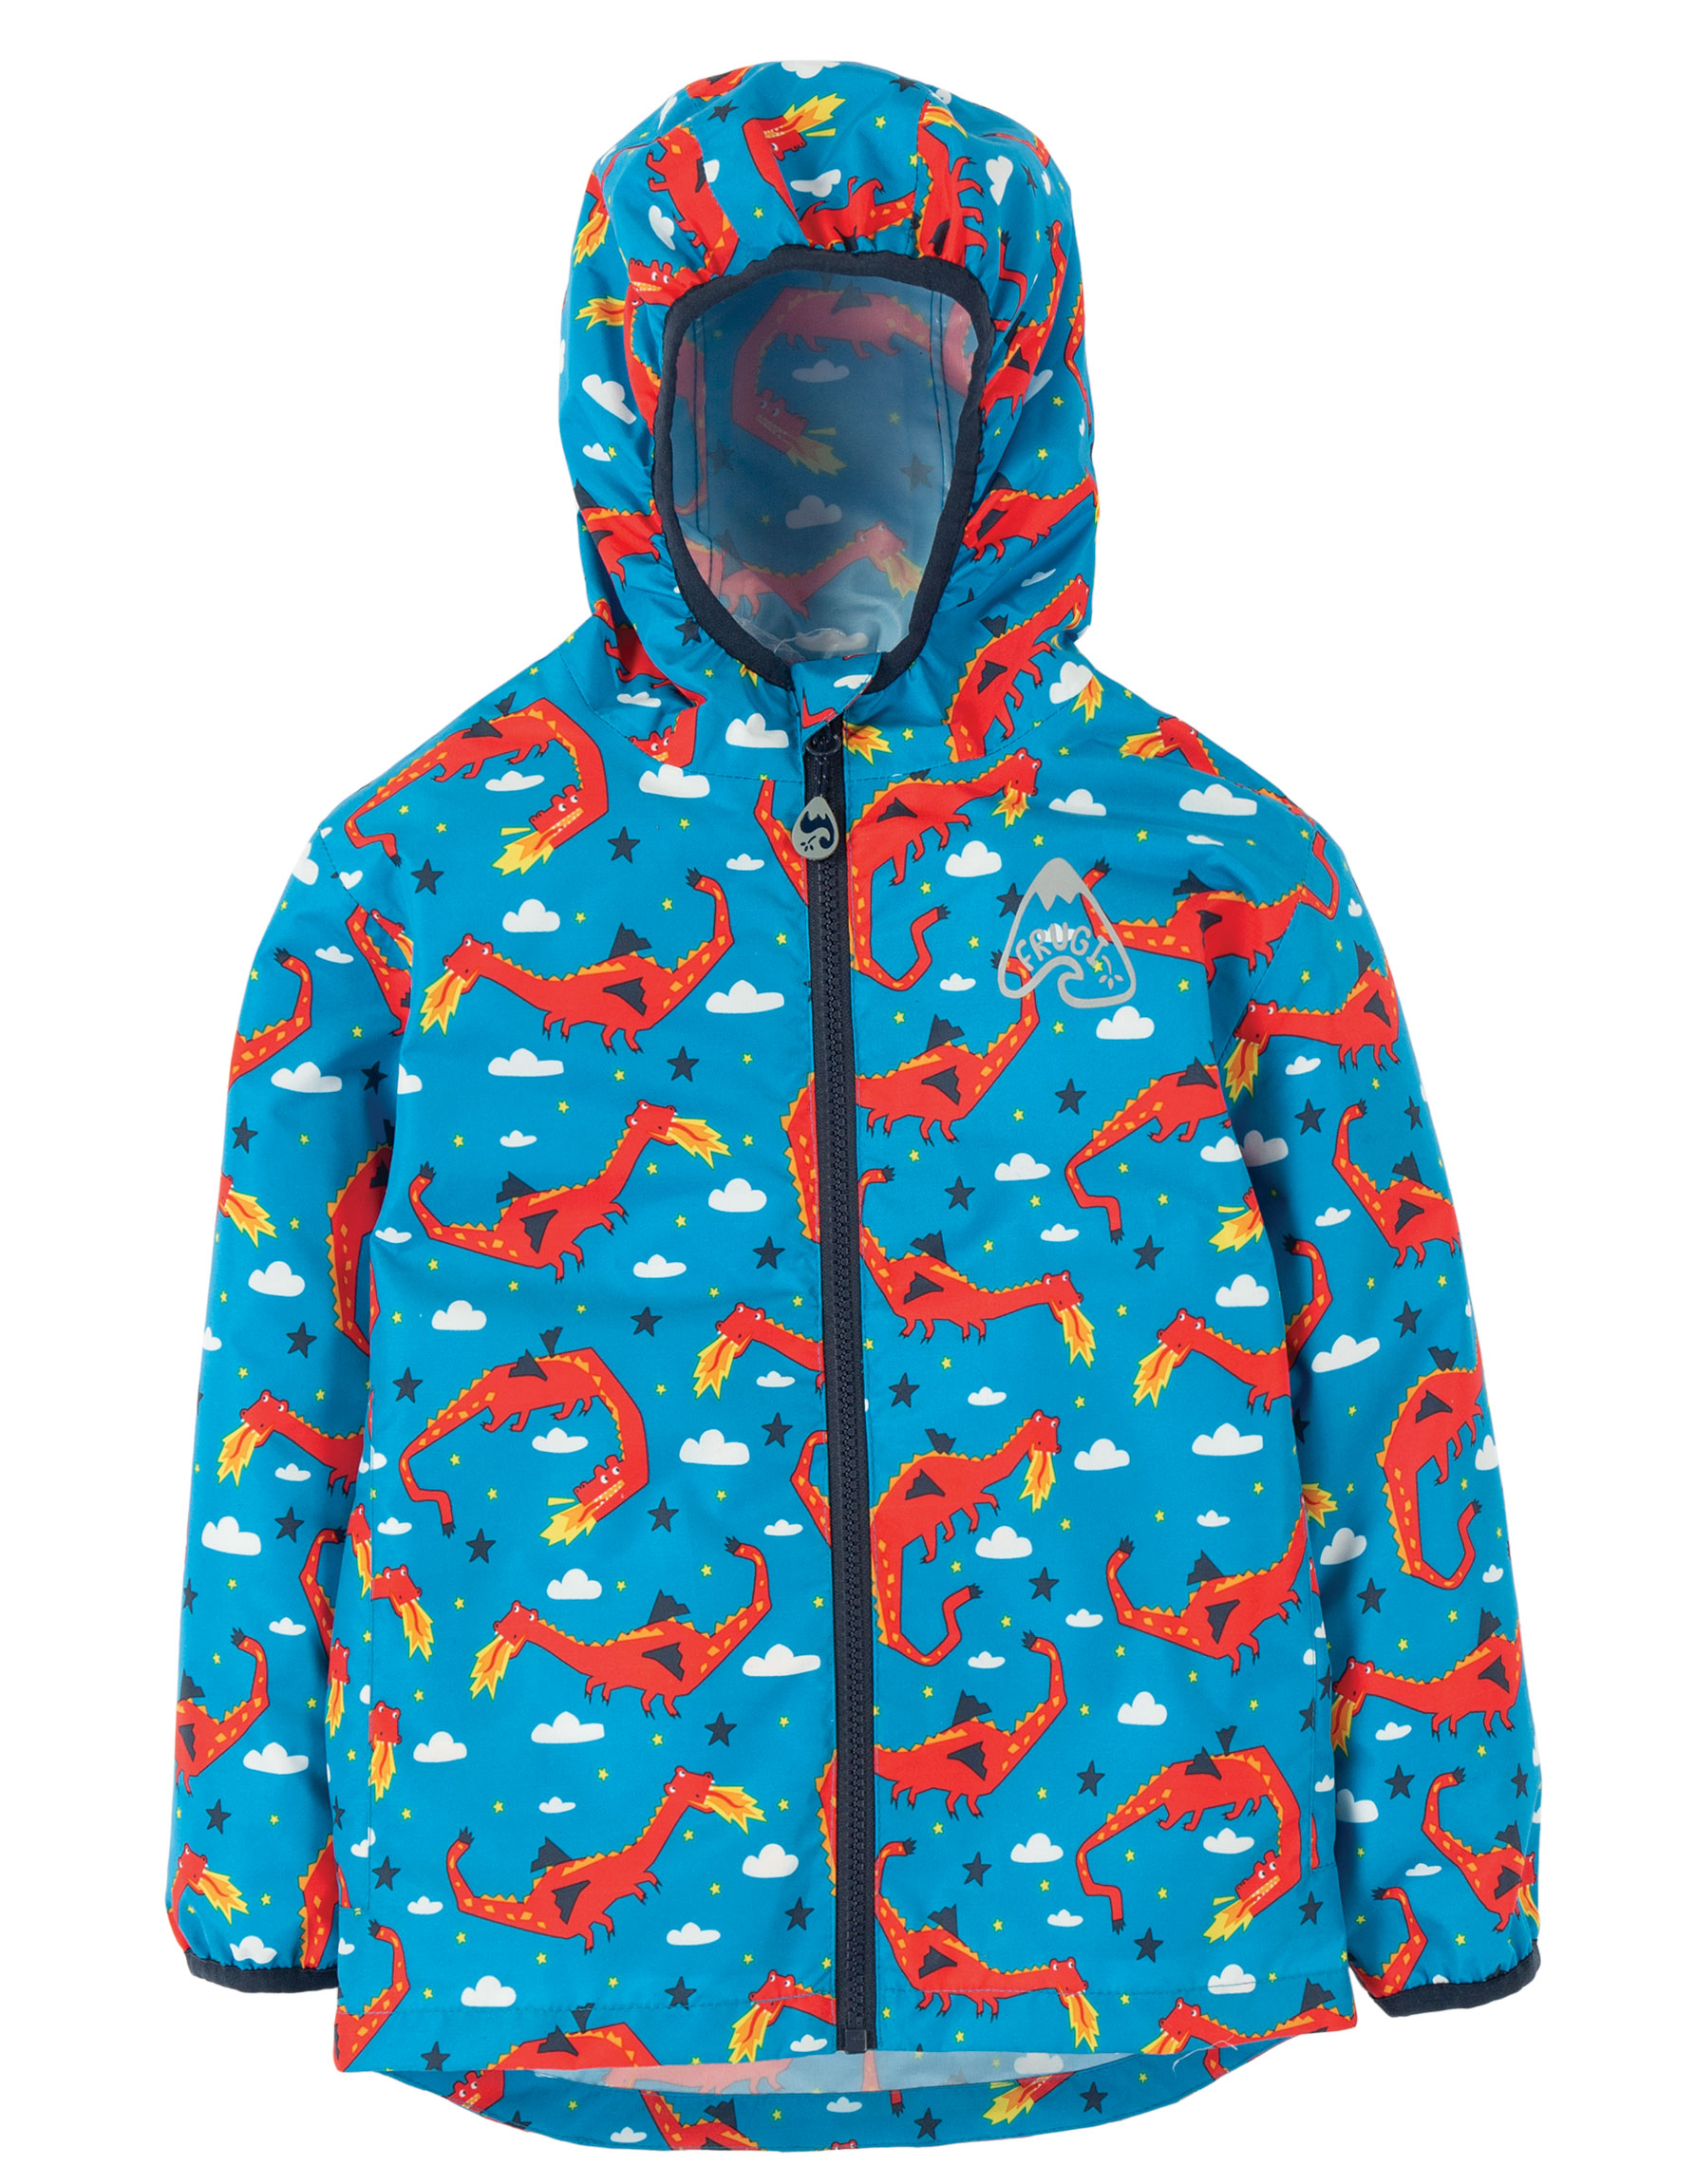 Frugi - Rain or Shine Jacket - Dragon Dreams